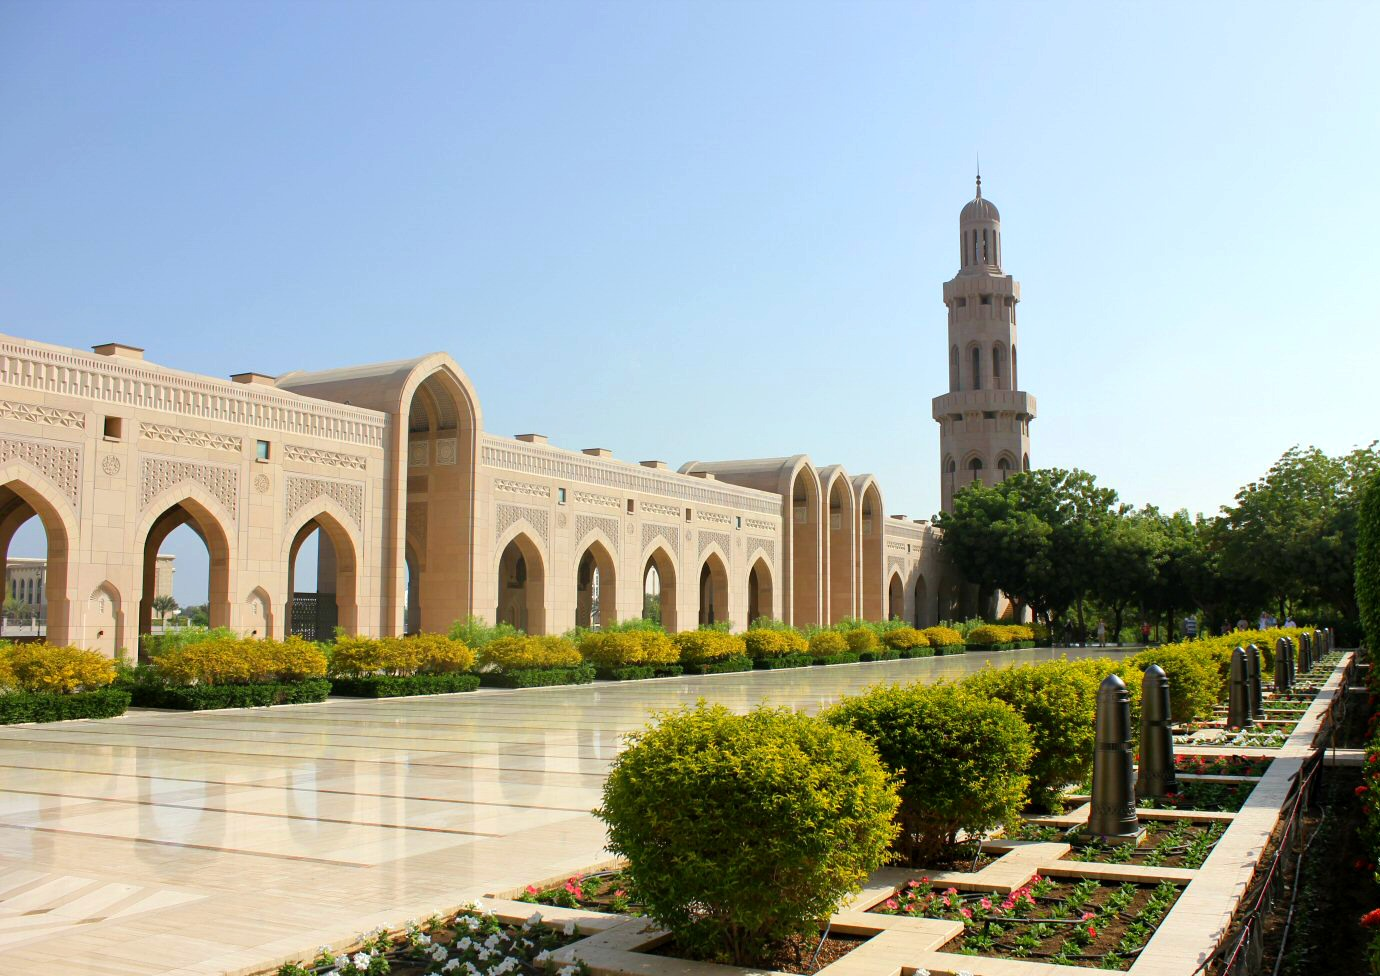 A view of the gardens and part of the Sultan Qaboos Grand Mosque in Muscat Oman - the beautiful architecture is one of my nine reasons to visit Oman with kids